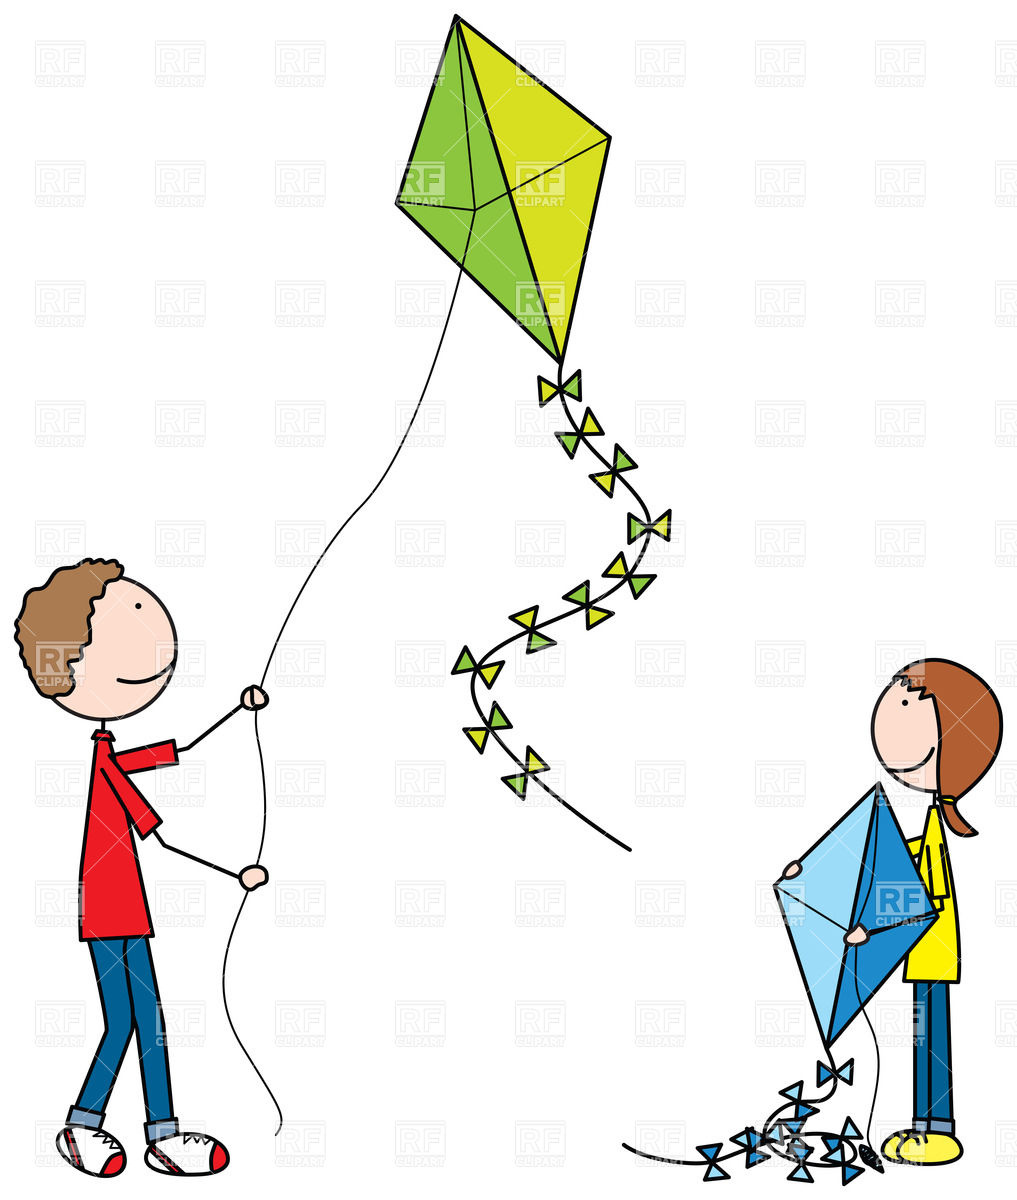 Clipart of cartoon kids free download best clipart of cartoon 1017x1200 kiteflying kids 1017x1200 kiteflying kids 2141x3132 martial arts clipart cartoon voltagebd Images